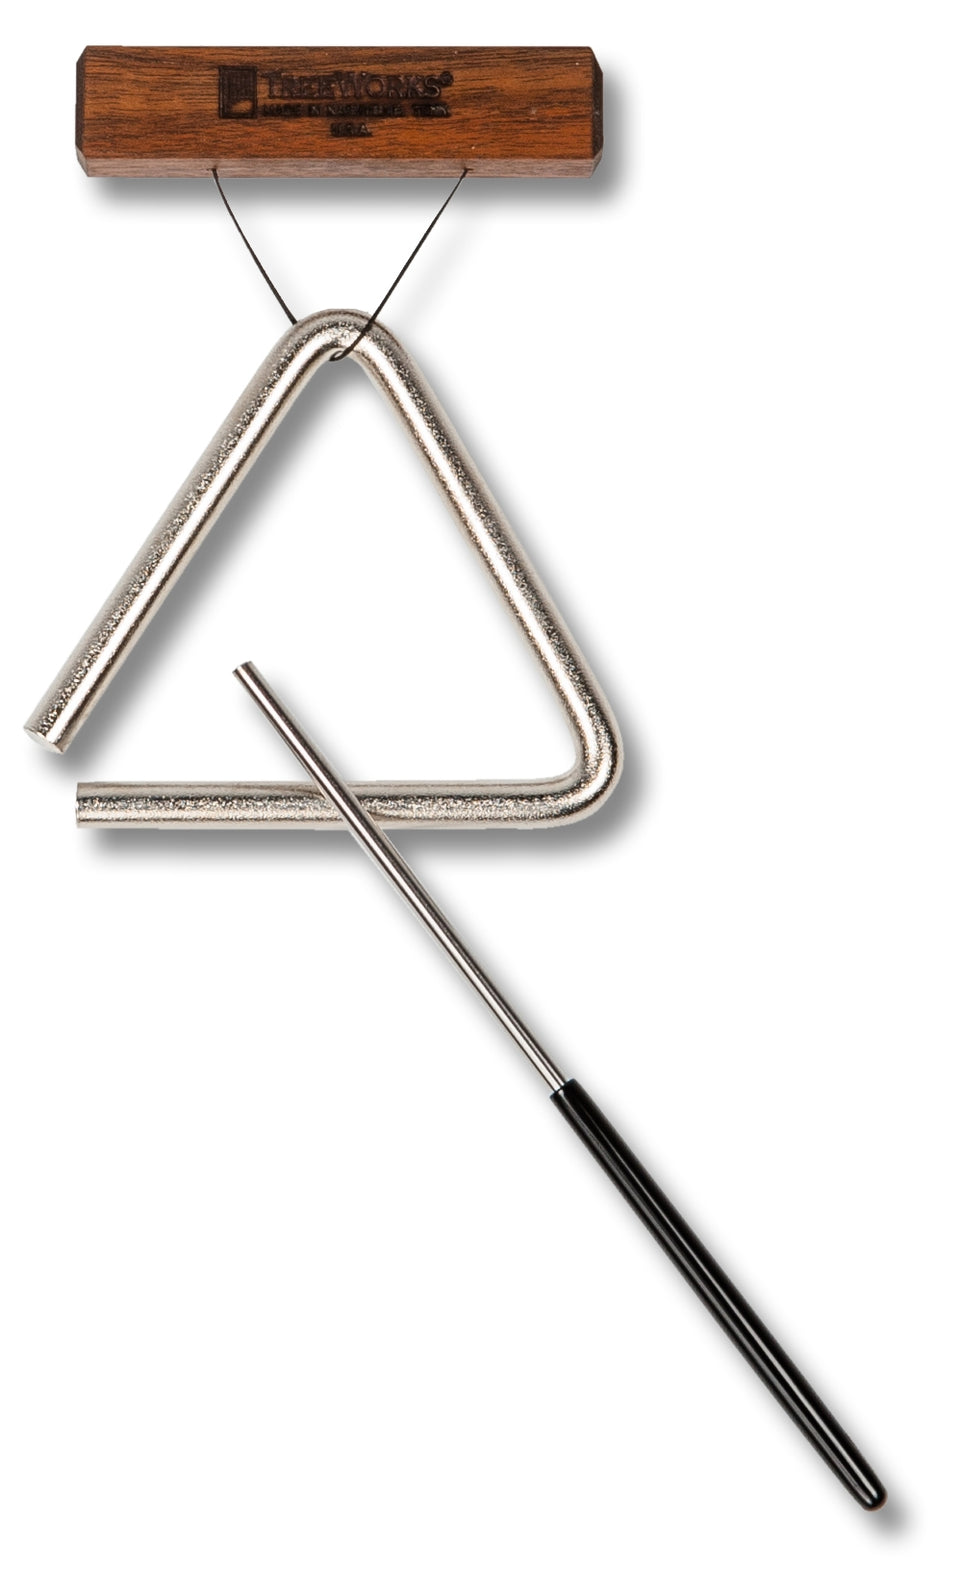 TreeWorks TRE-HS04 4-Inch Triangle W/ Beater/Striker & Holder